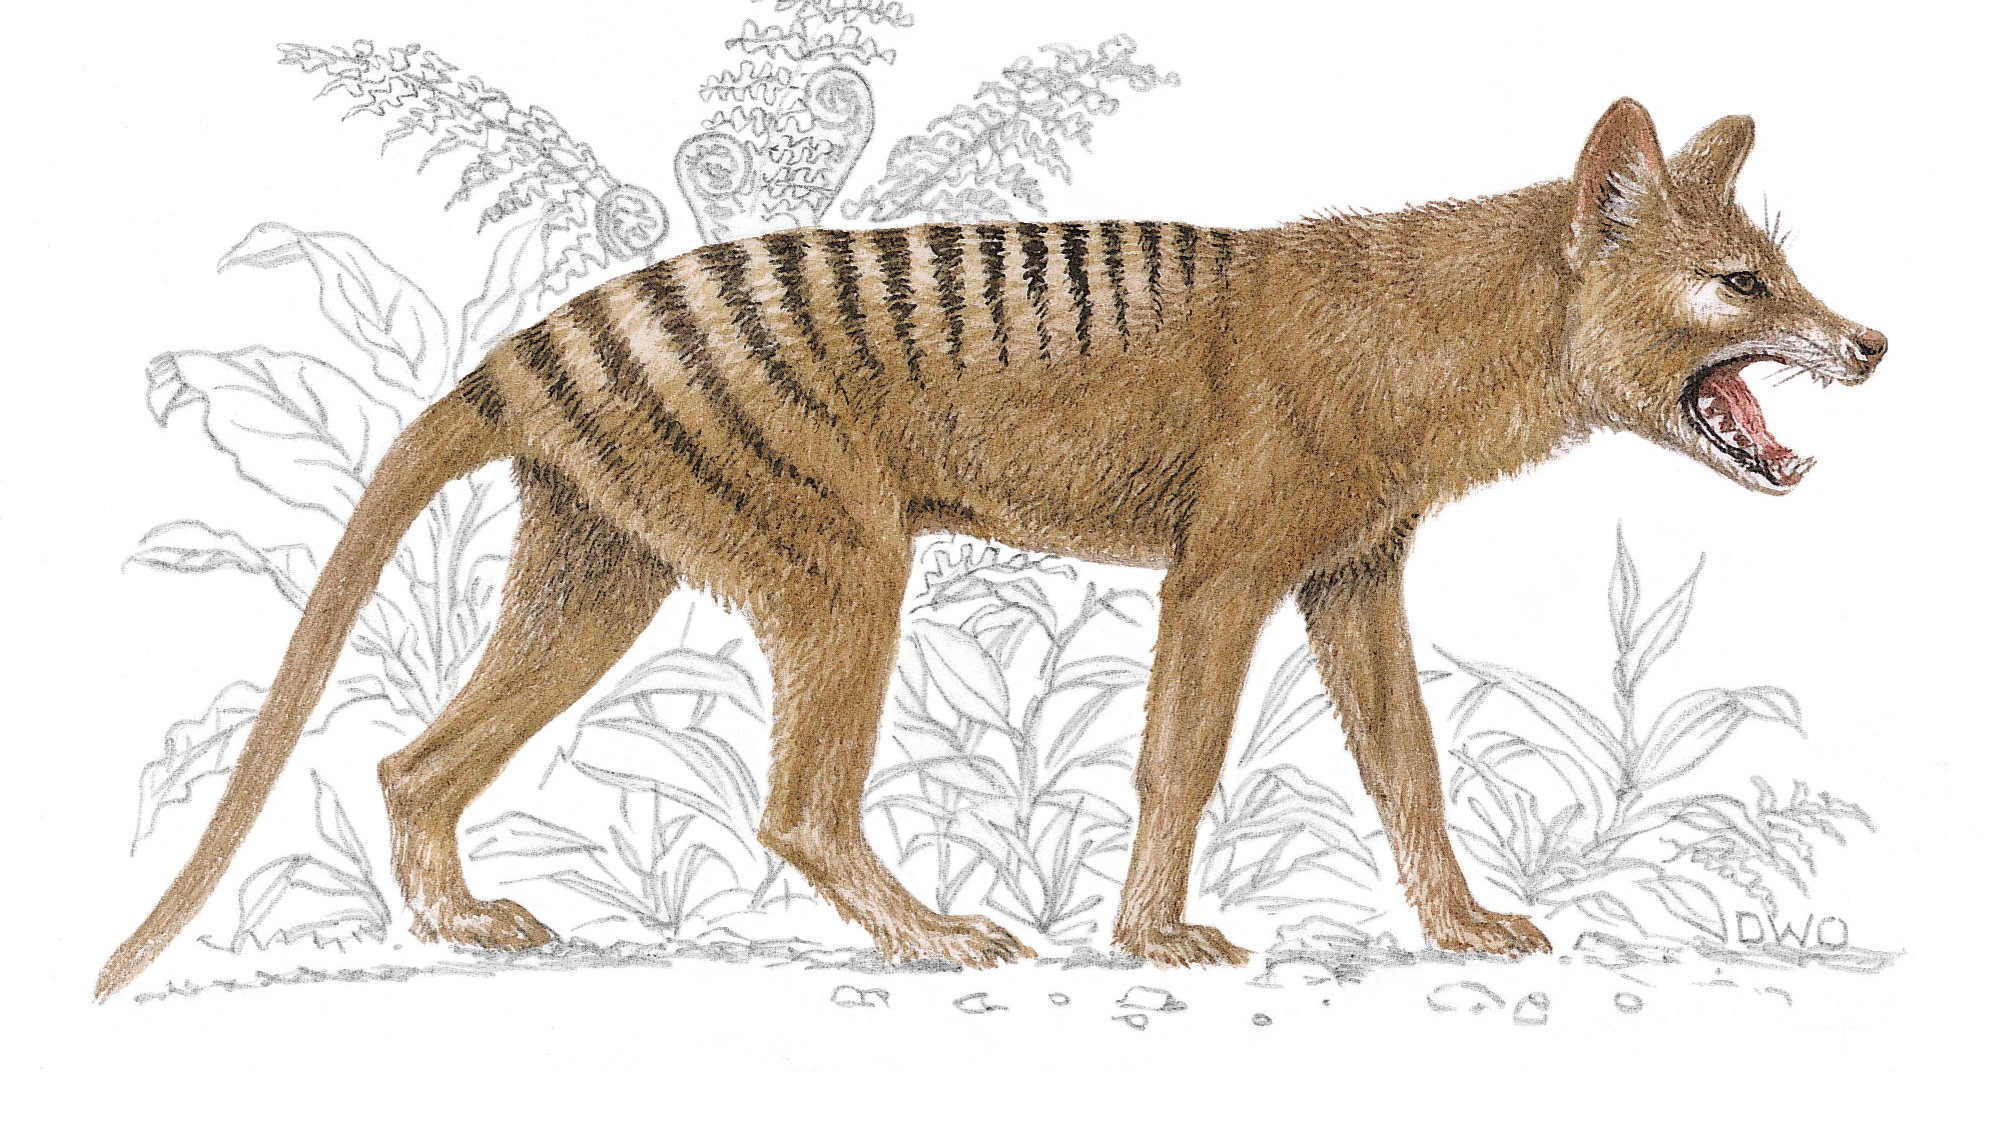 Lack Of Genetic Diversity May Have Doomed Tasmanian Tiger Scientists Say